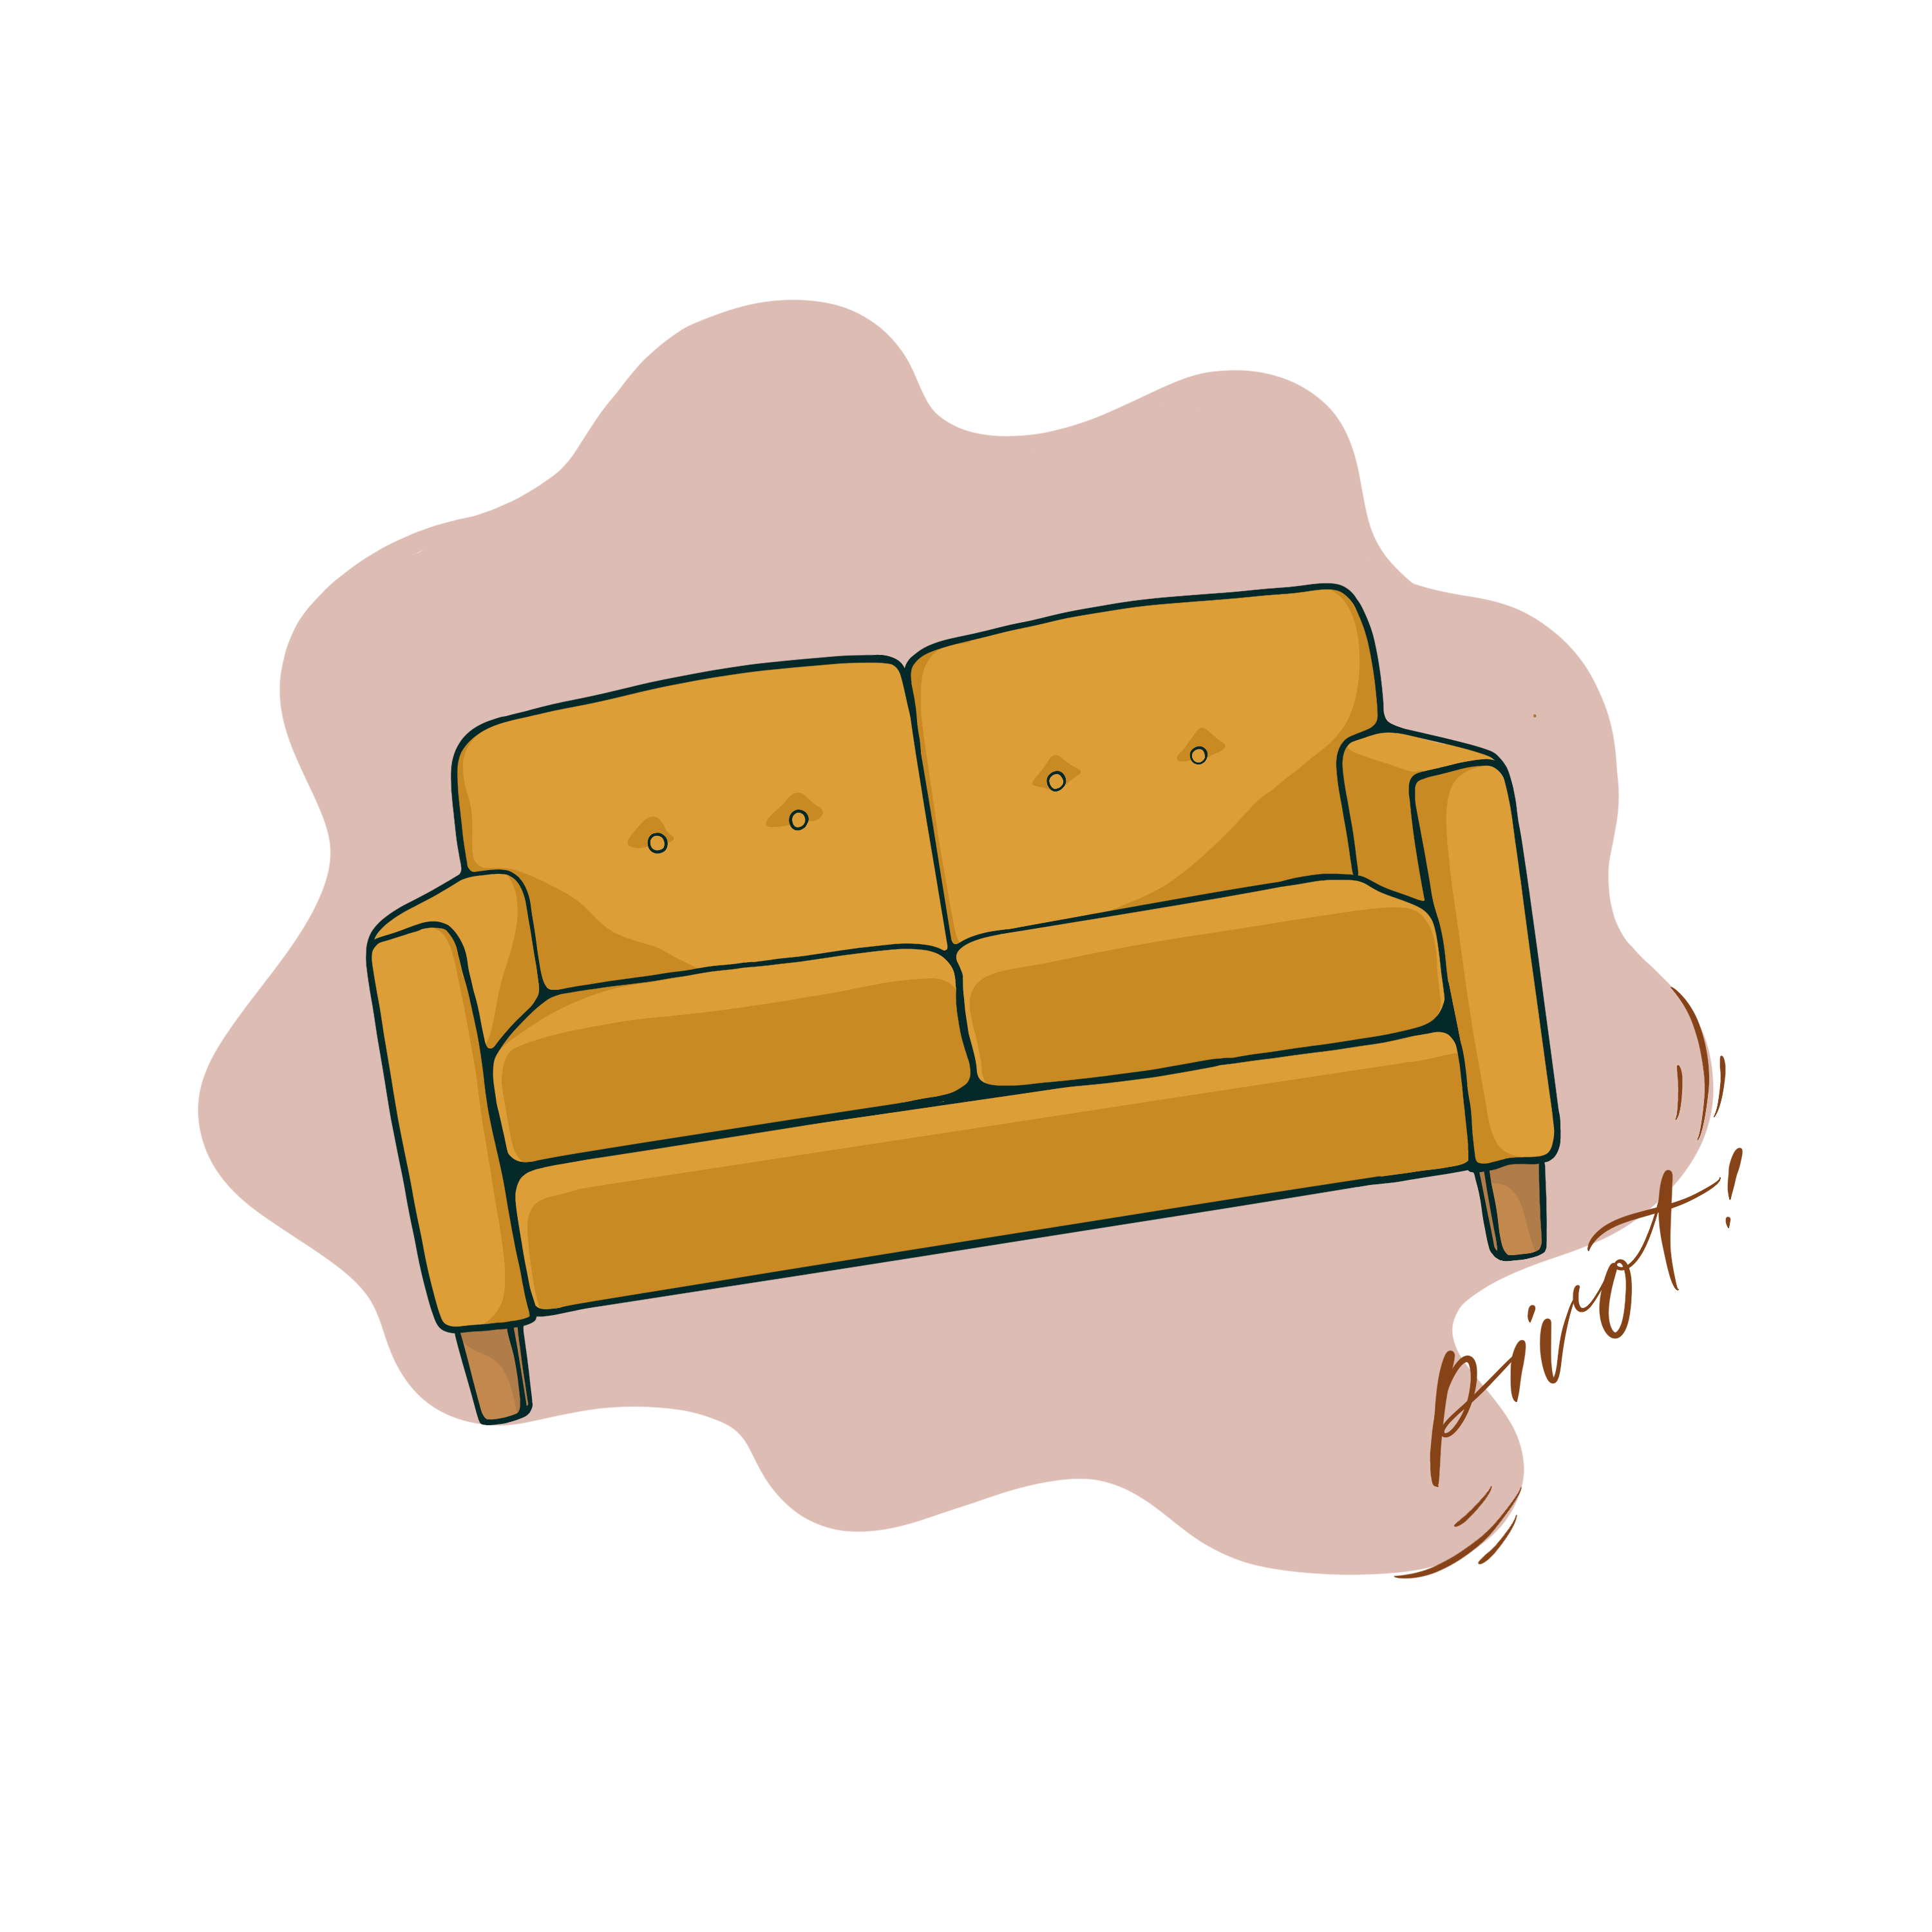 Illustration of yellow couch on an angle